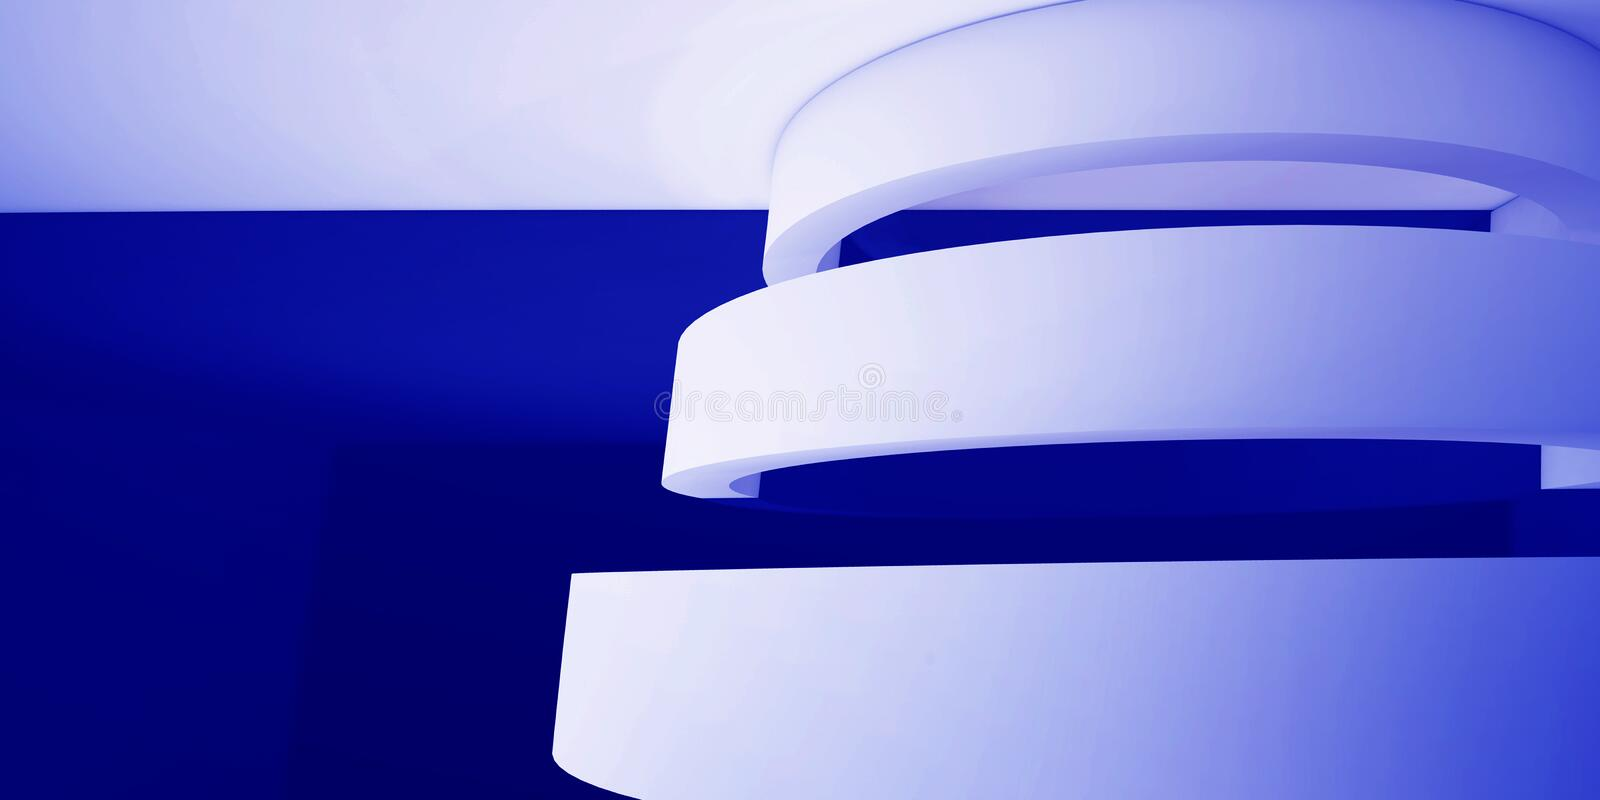 Minimalistic, abstract background with an arch. 3d render, minimal. royalty free illustration